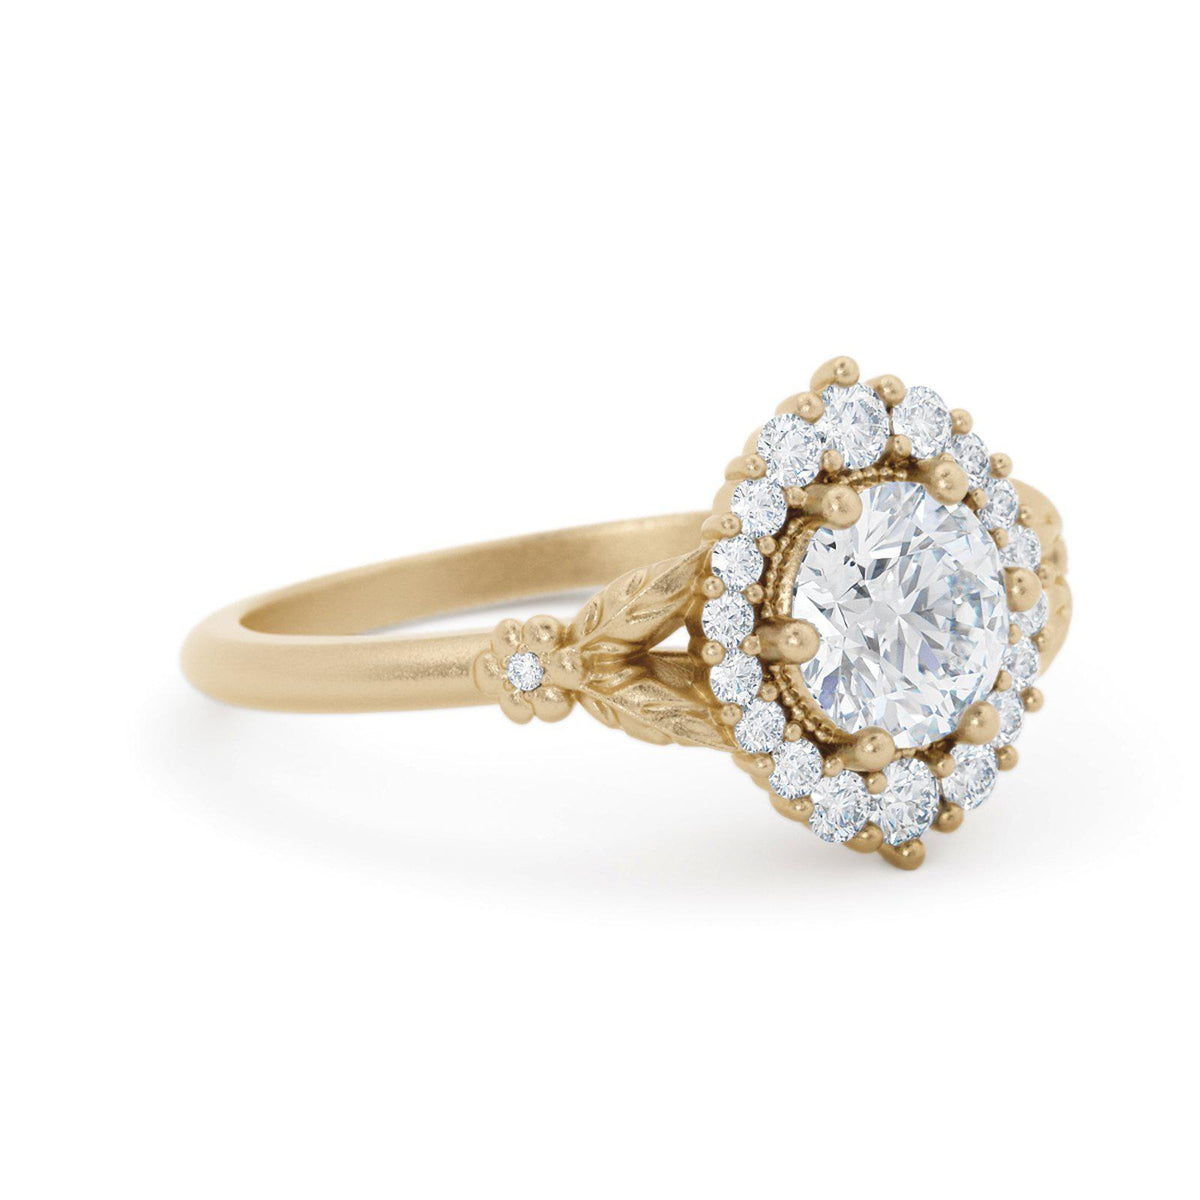 Orla Diamond Halo Engagement Ring with Flowers